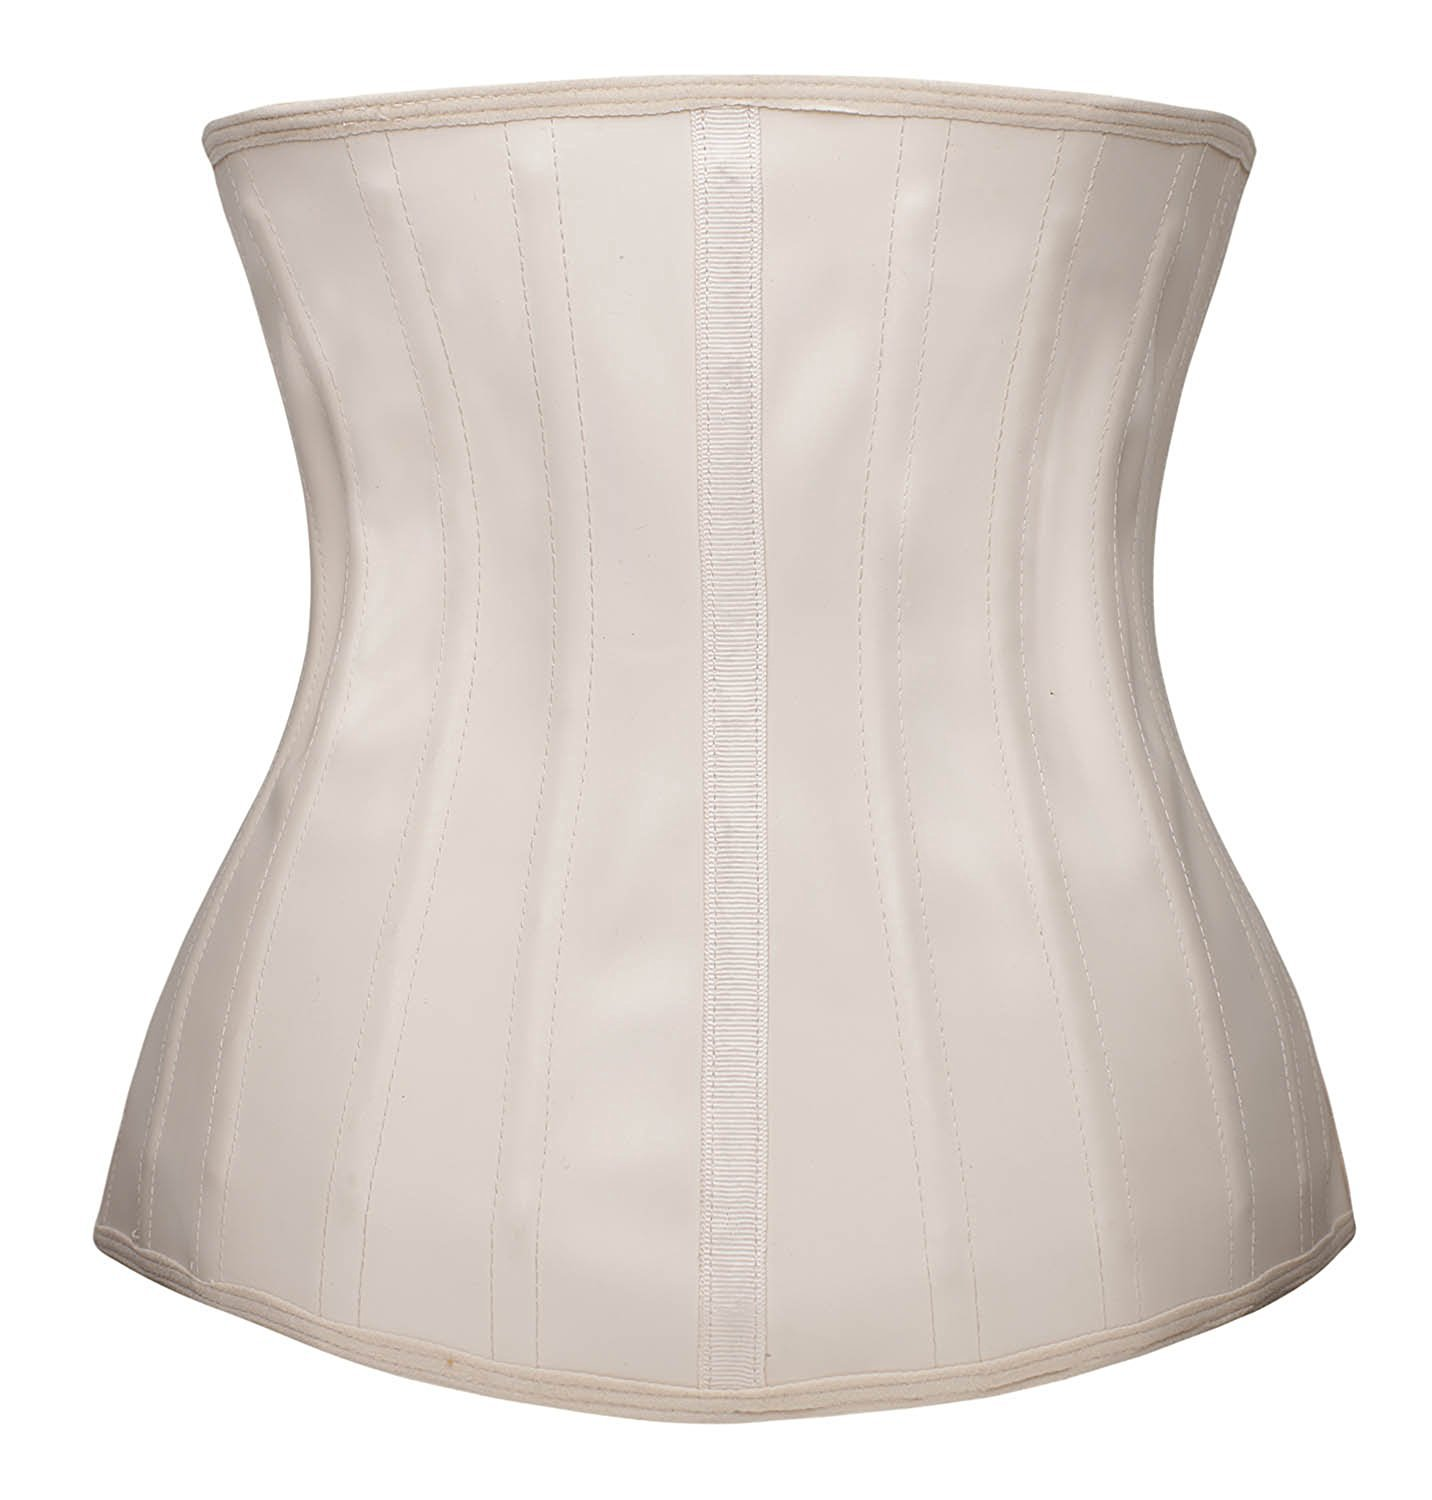 b6654193a0 YIANNA Women s Underbust Latex Sport Girdle Waist Training Corset Hourglass Body  Shaper  Amazon.com.au  Fashion